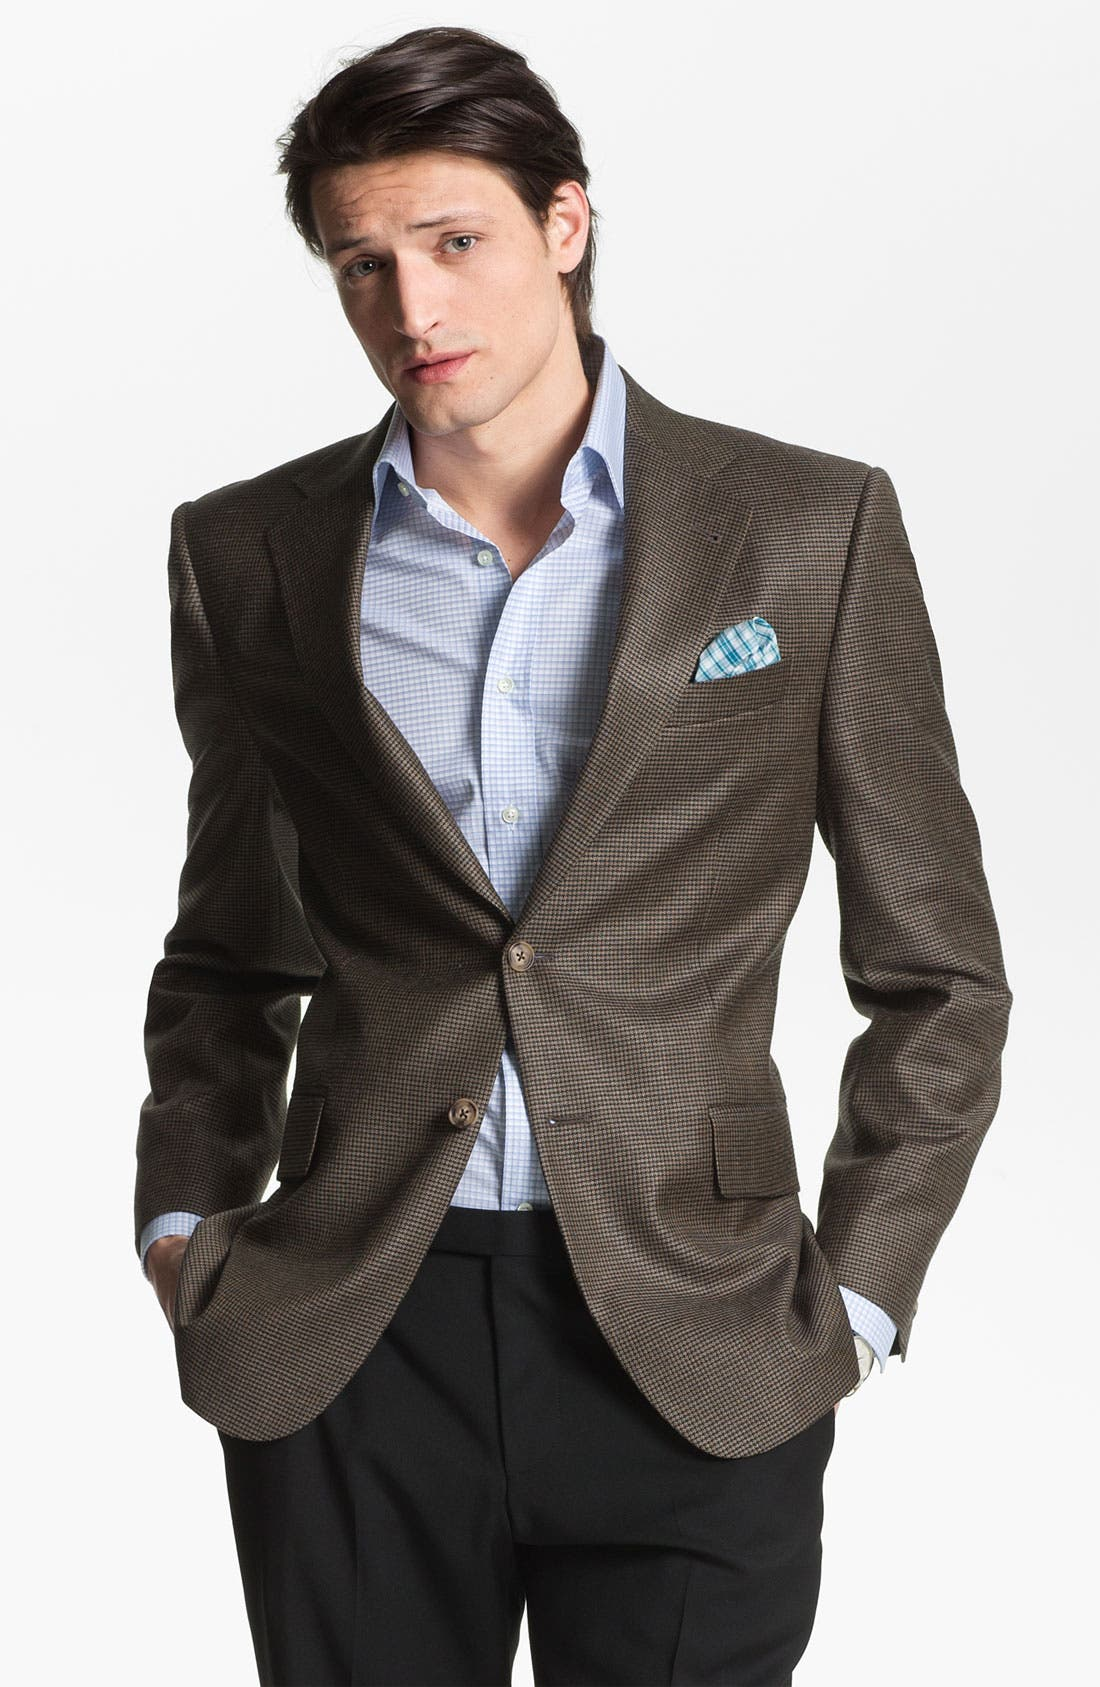 Main Image - Joseph Abboud 'Signature Silver' Houndstooth Sportcoat